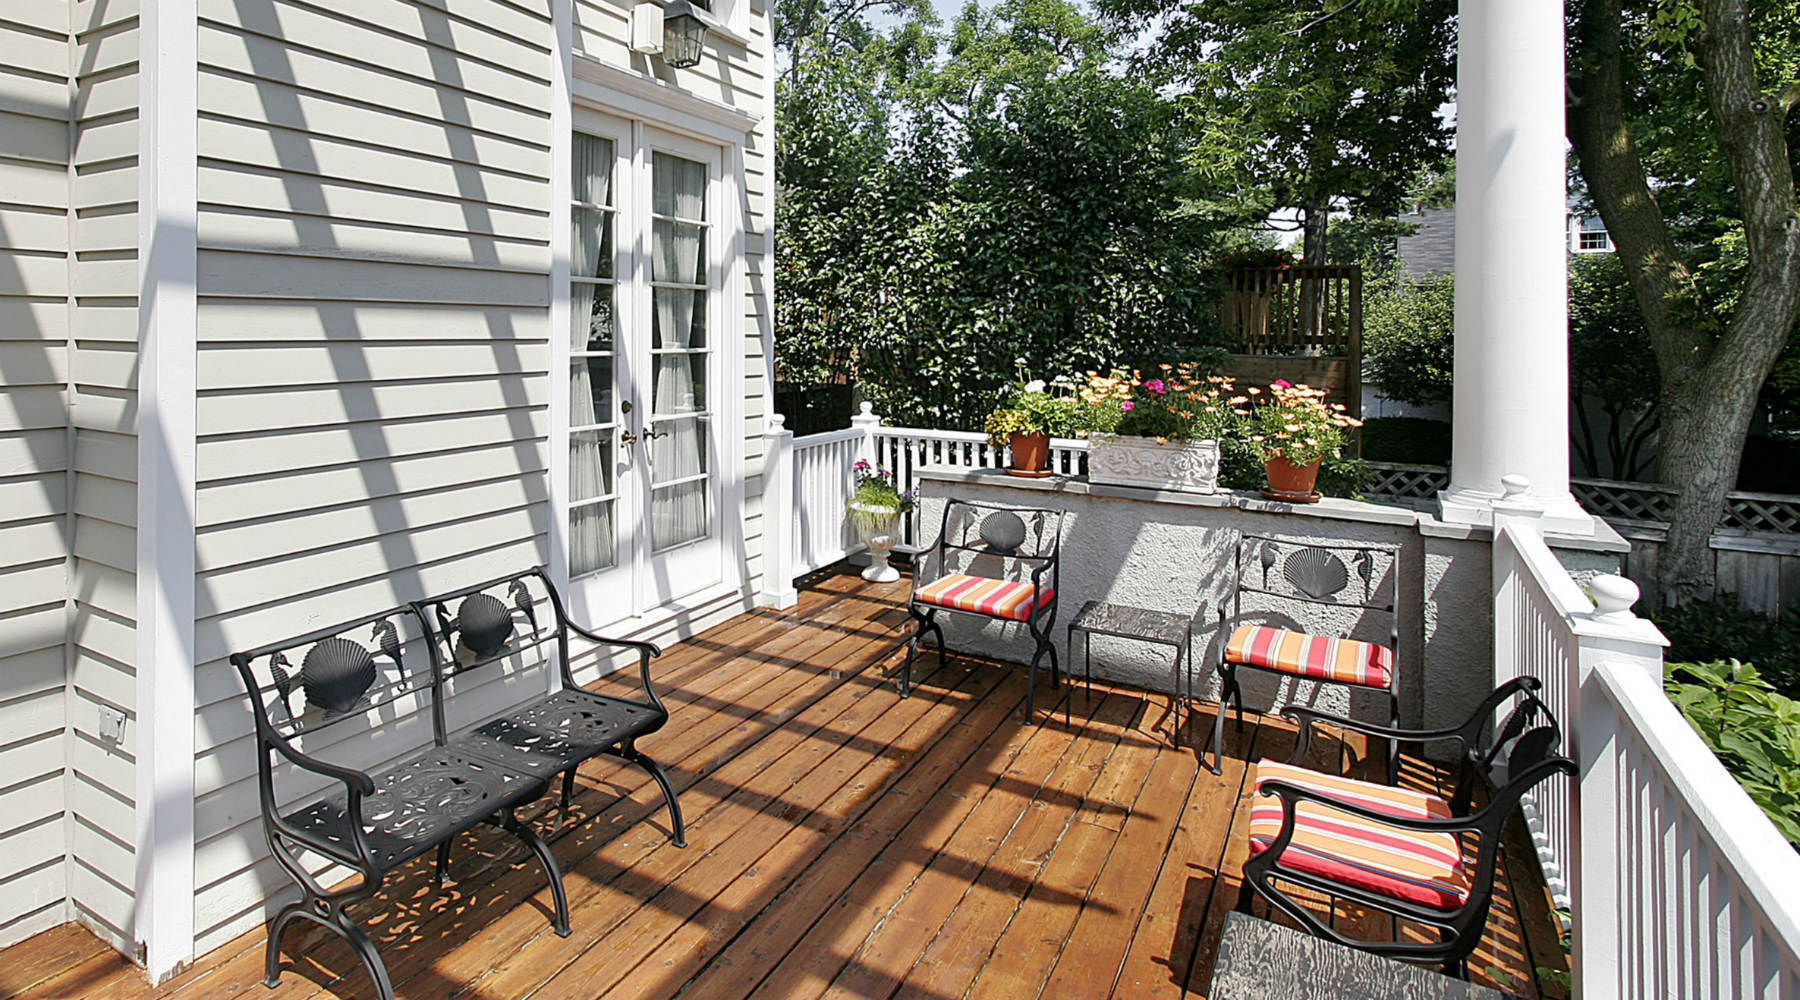 Deck with wrought iron furniture and flowers